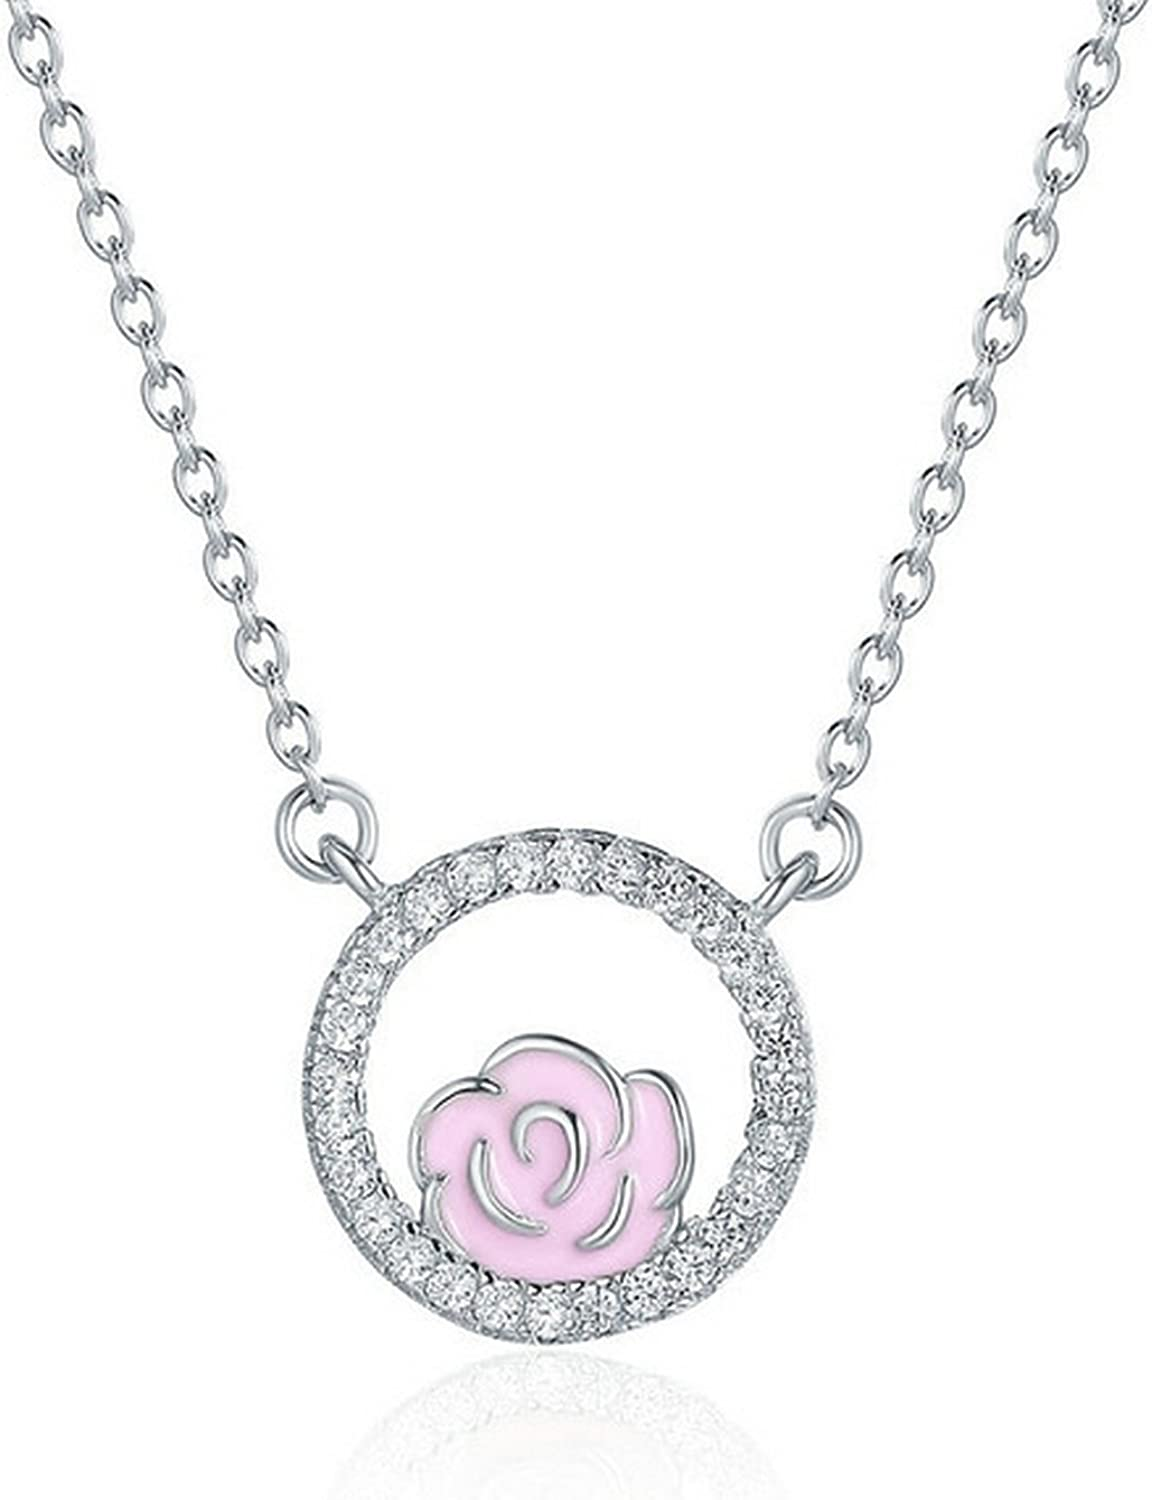 CS-DB Jewelry Silver Rose Circle Chain Charm Pendants Necklaces